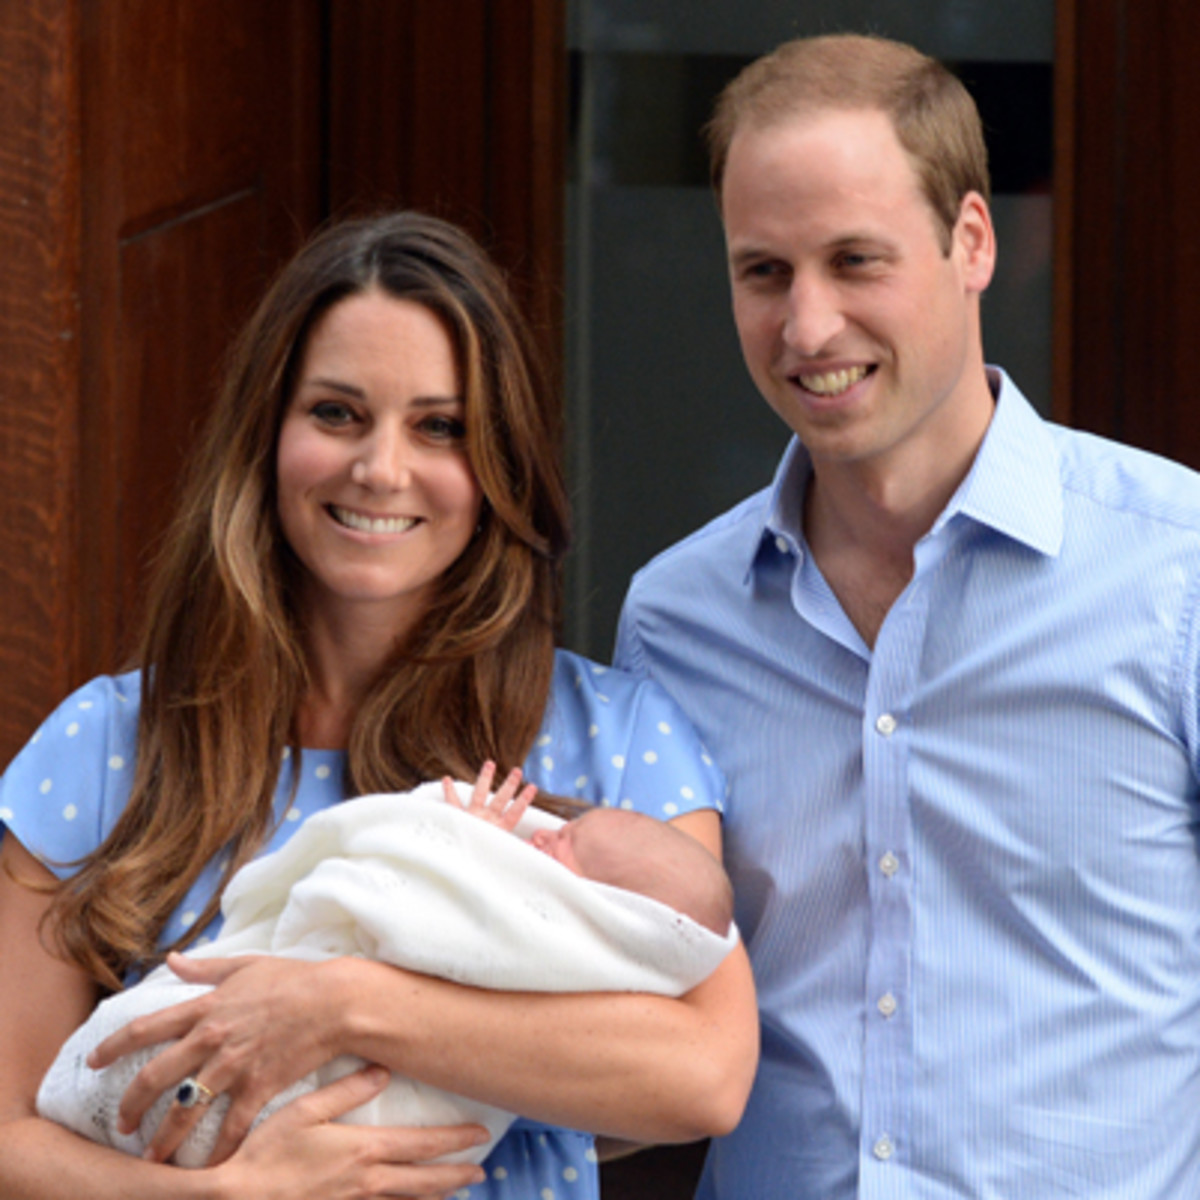 LONDON, UNITED KINGDOM - JULY 23:  Prince William, Duke of Cambridge and Catherine, Duchess of Cambridge with their newborn son pose for the media before departing the Lindo Wing of St Mary's Hospital on July 23, 2013 in London, England. Catherine, Duchess of Cambridge yesterday gave birth to a boy at 16.24 BST and weighing 8lb 6oz, with Prince William, Duke of Cambridge at her side. The baby, as yet unnamed, is third in line to the throne and becomes the Prince of Cambridge.  (Photo by Anwar Hussein/WireImage)